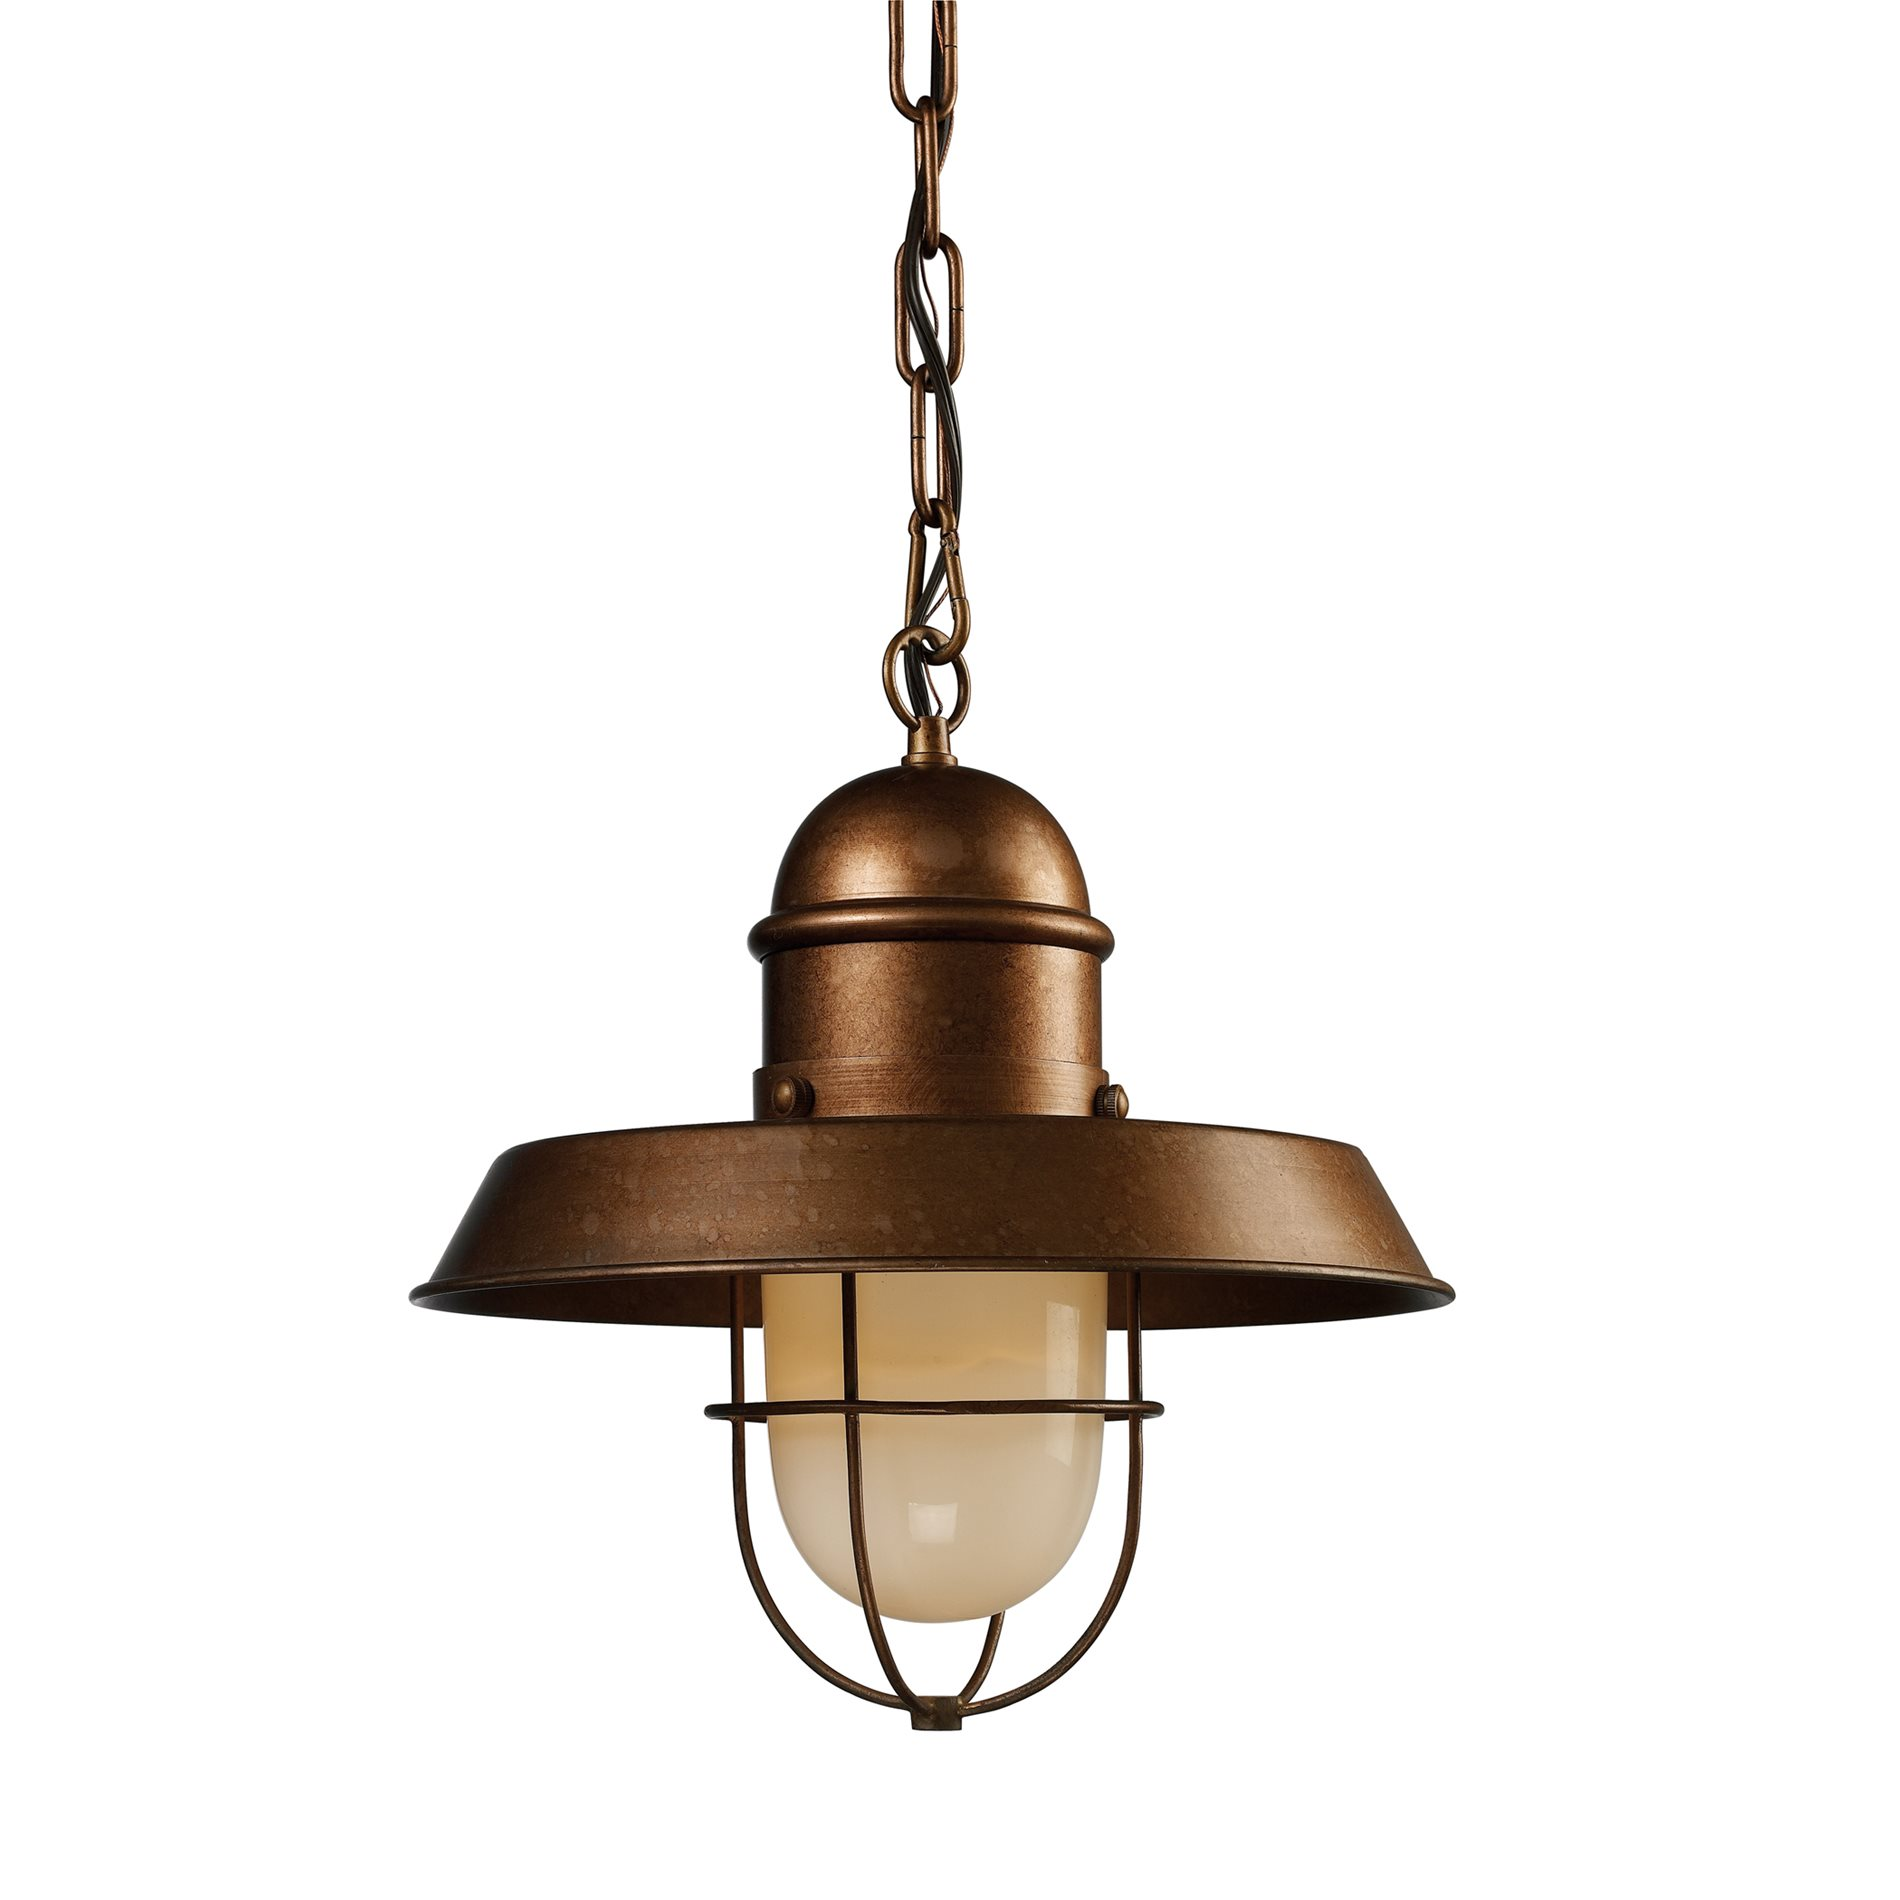 Farmhouse Transitional Pendant Light X 1 KL